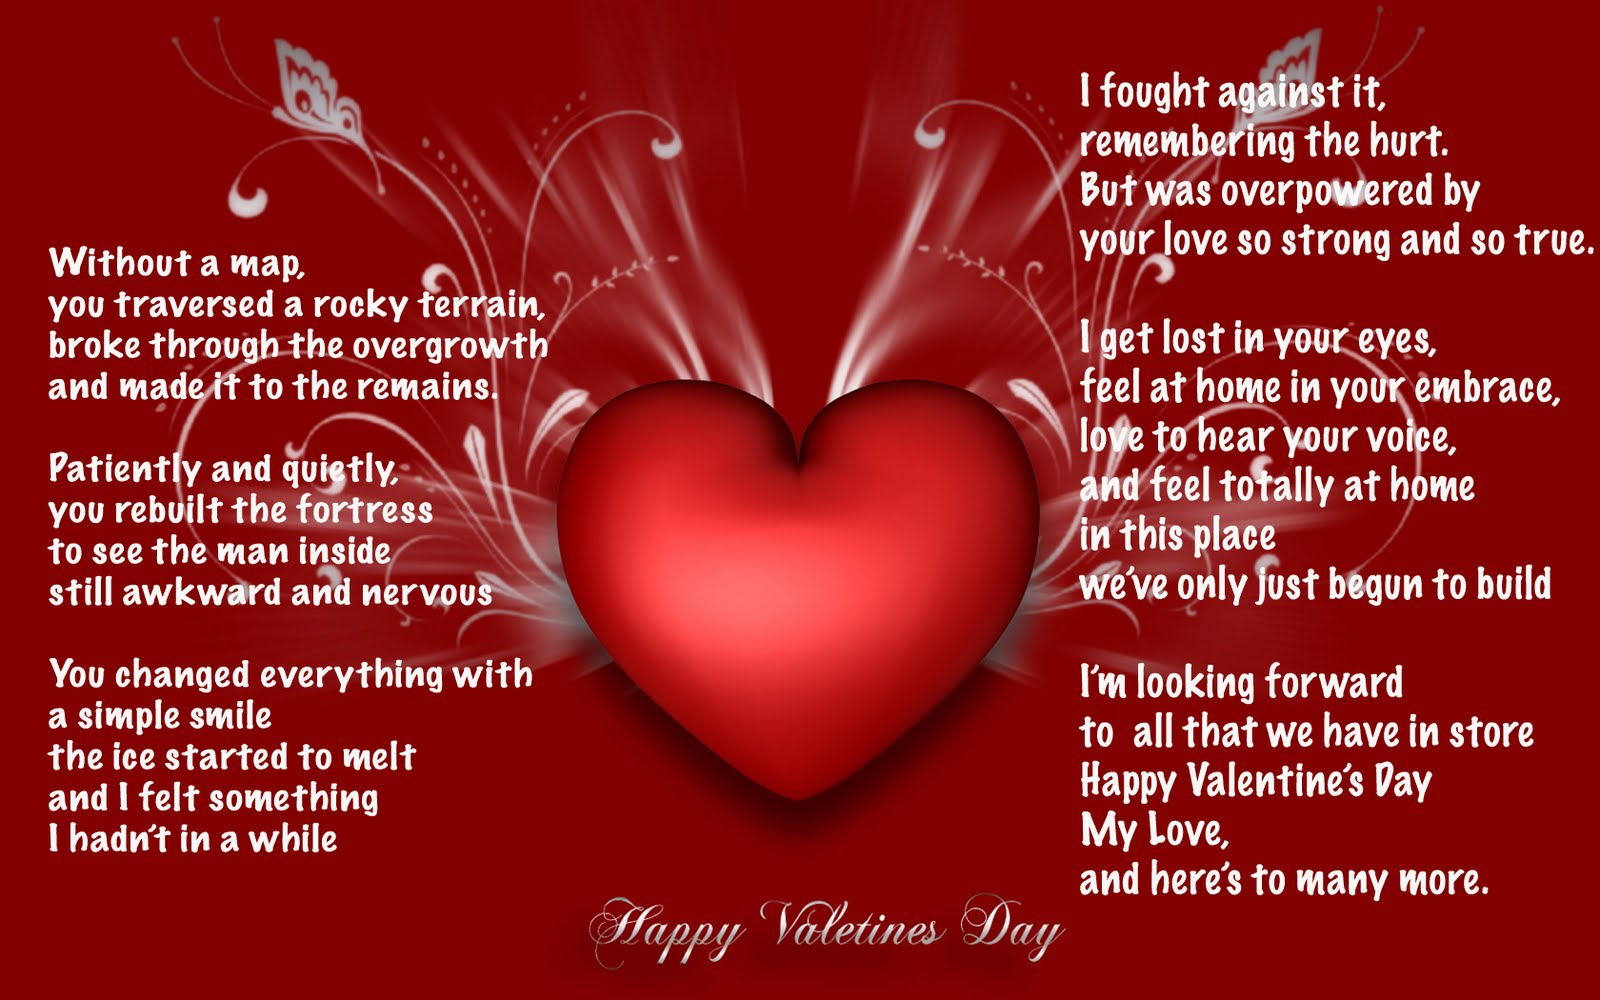 I Love You Quotes Valentines Day : Valentines day ideas, valentines day wallpaper, valentines day poems